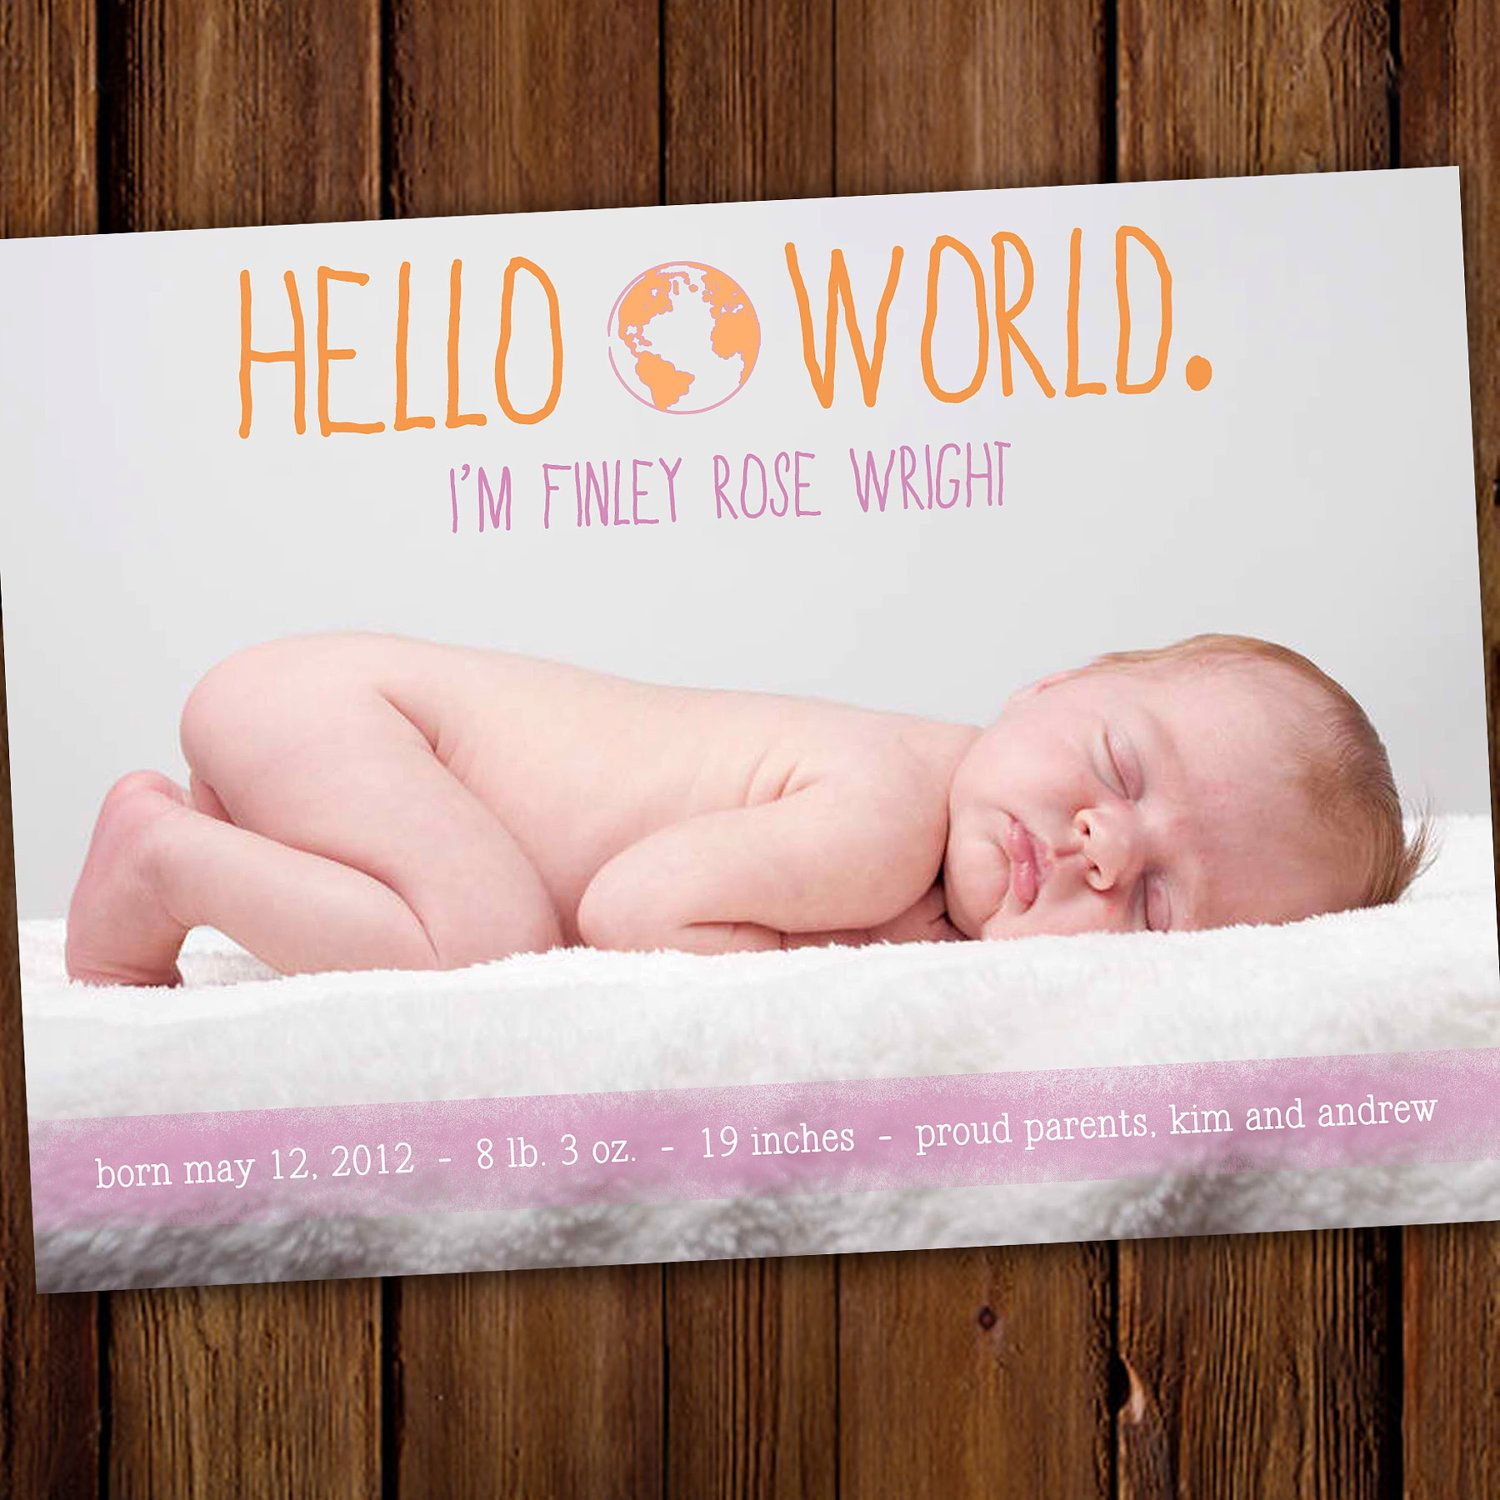 Boy or Girl Baby Announcement Birth Announcement Hello World – Etsy Baby Announcements